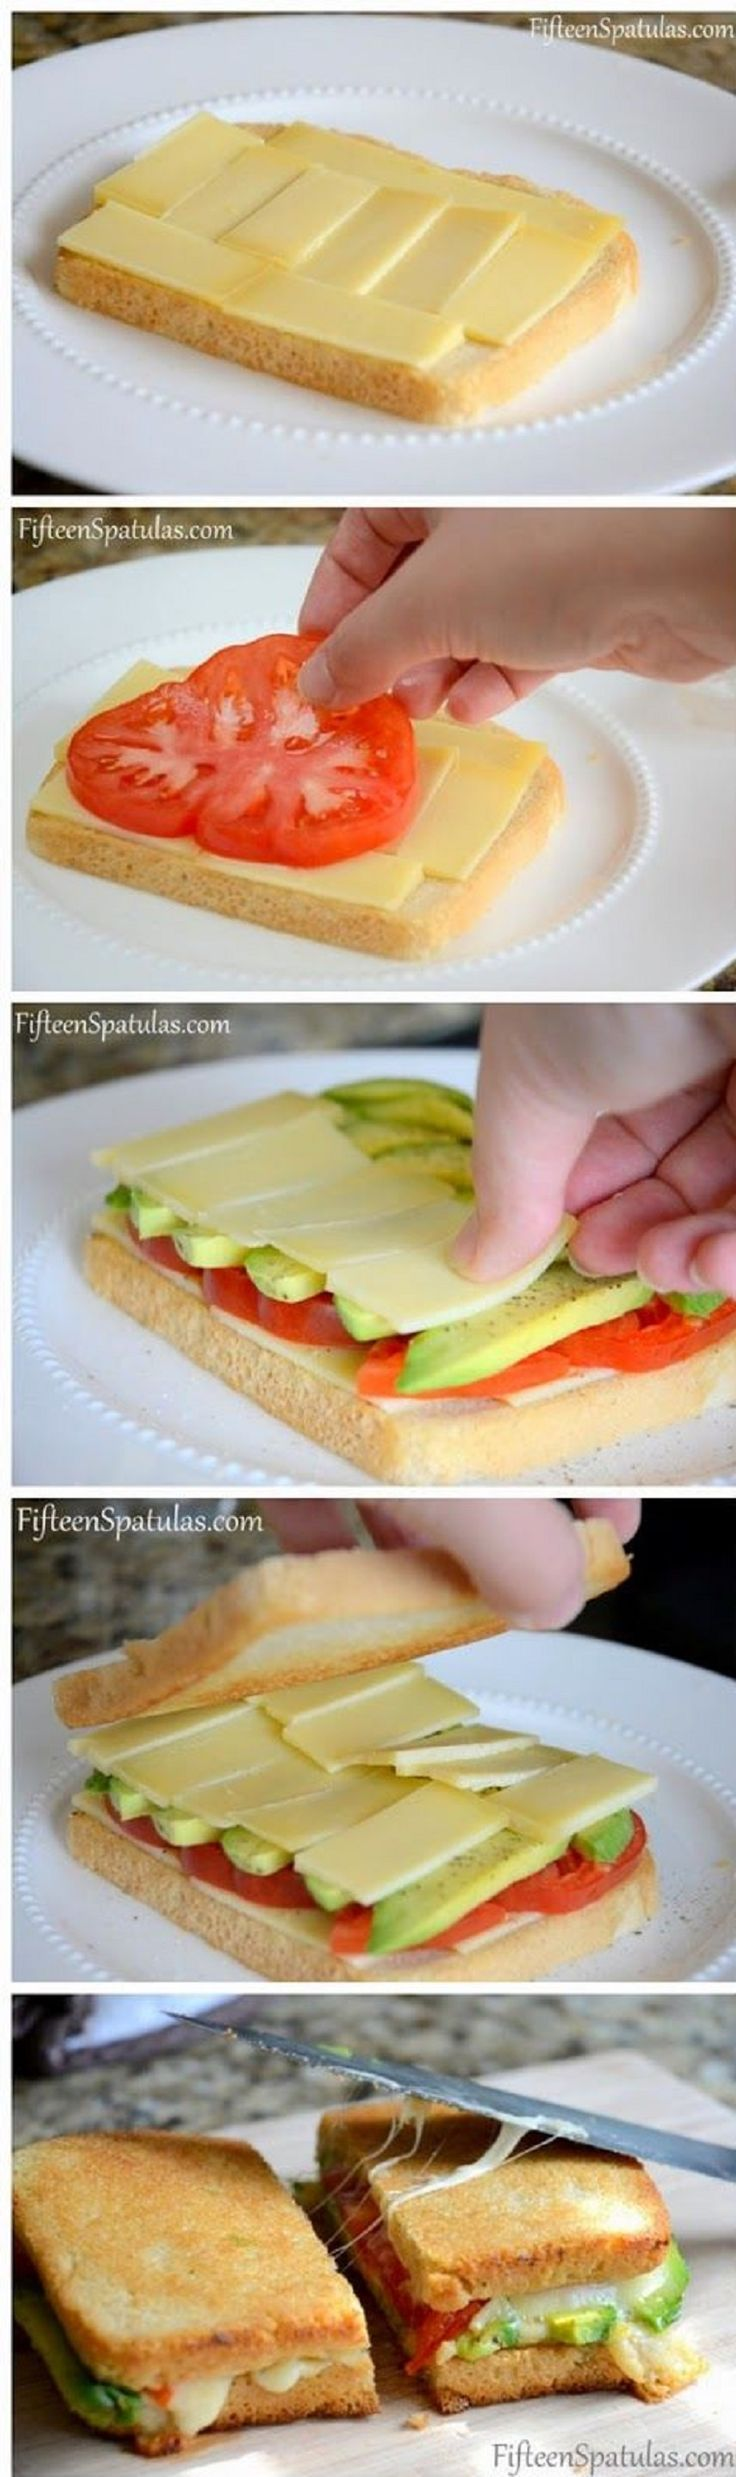 Grilled Cheese with Avocado and Heirloom Tomato - 16 Healthy Spring Recipes for Kids   GleamItUp